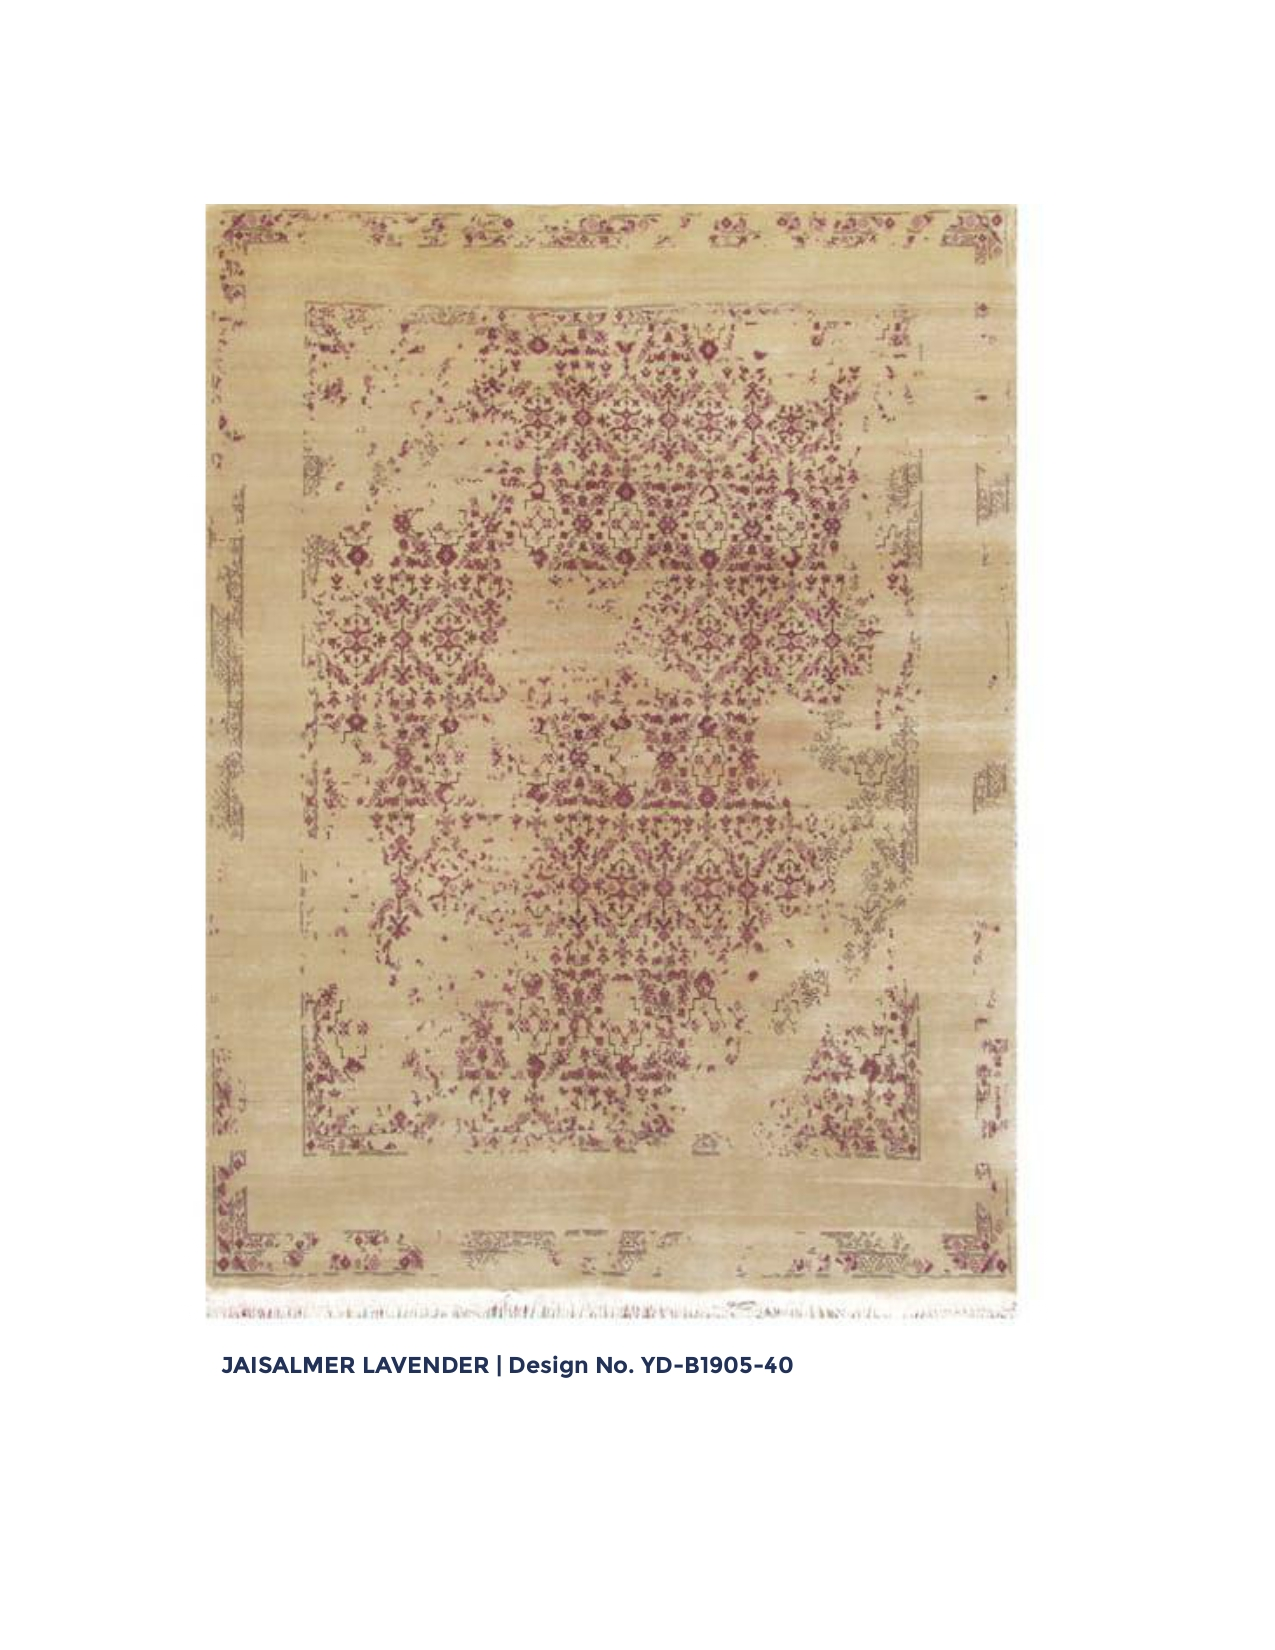 Hand_Knotted_CC_1905_45.jpg